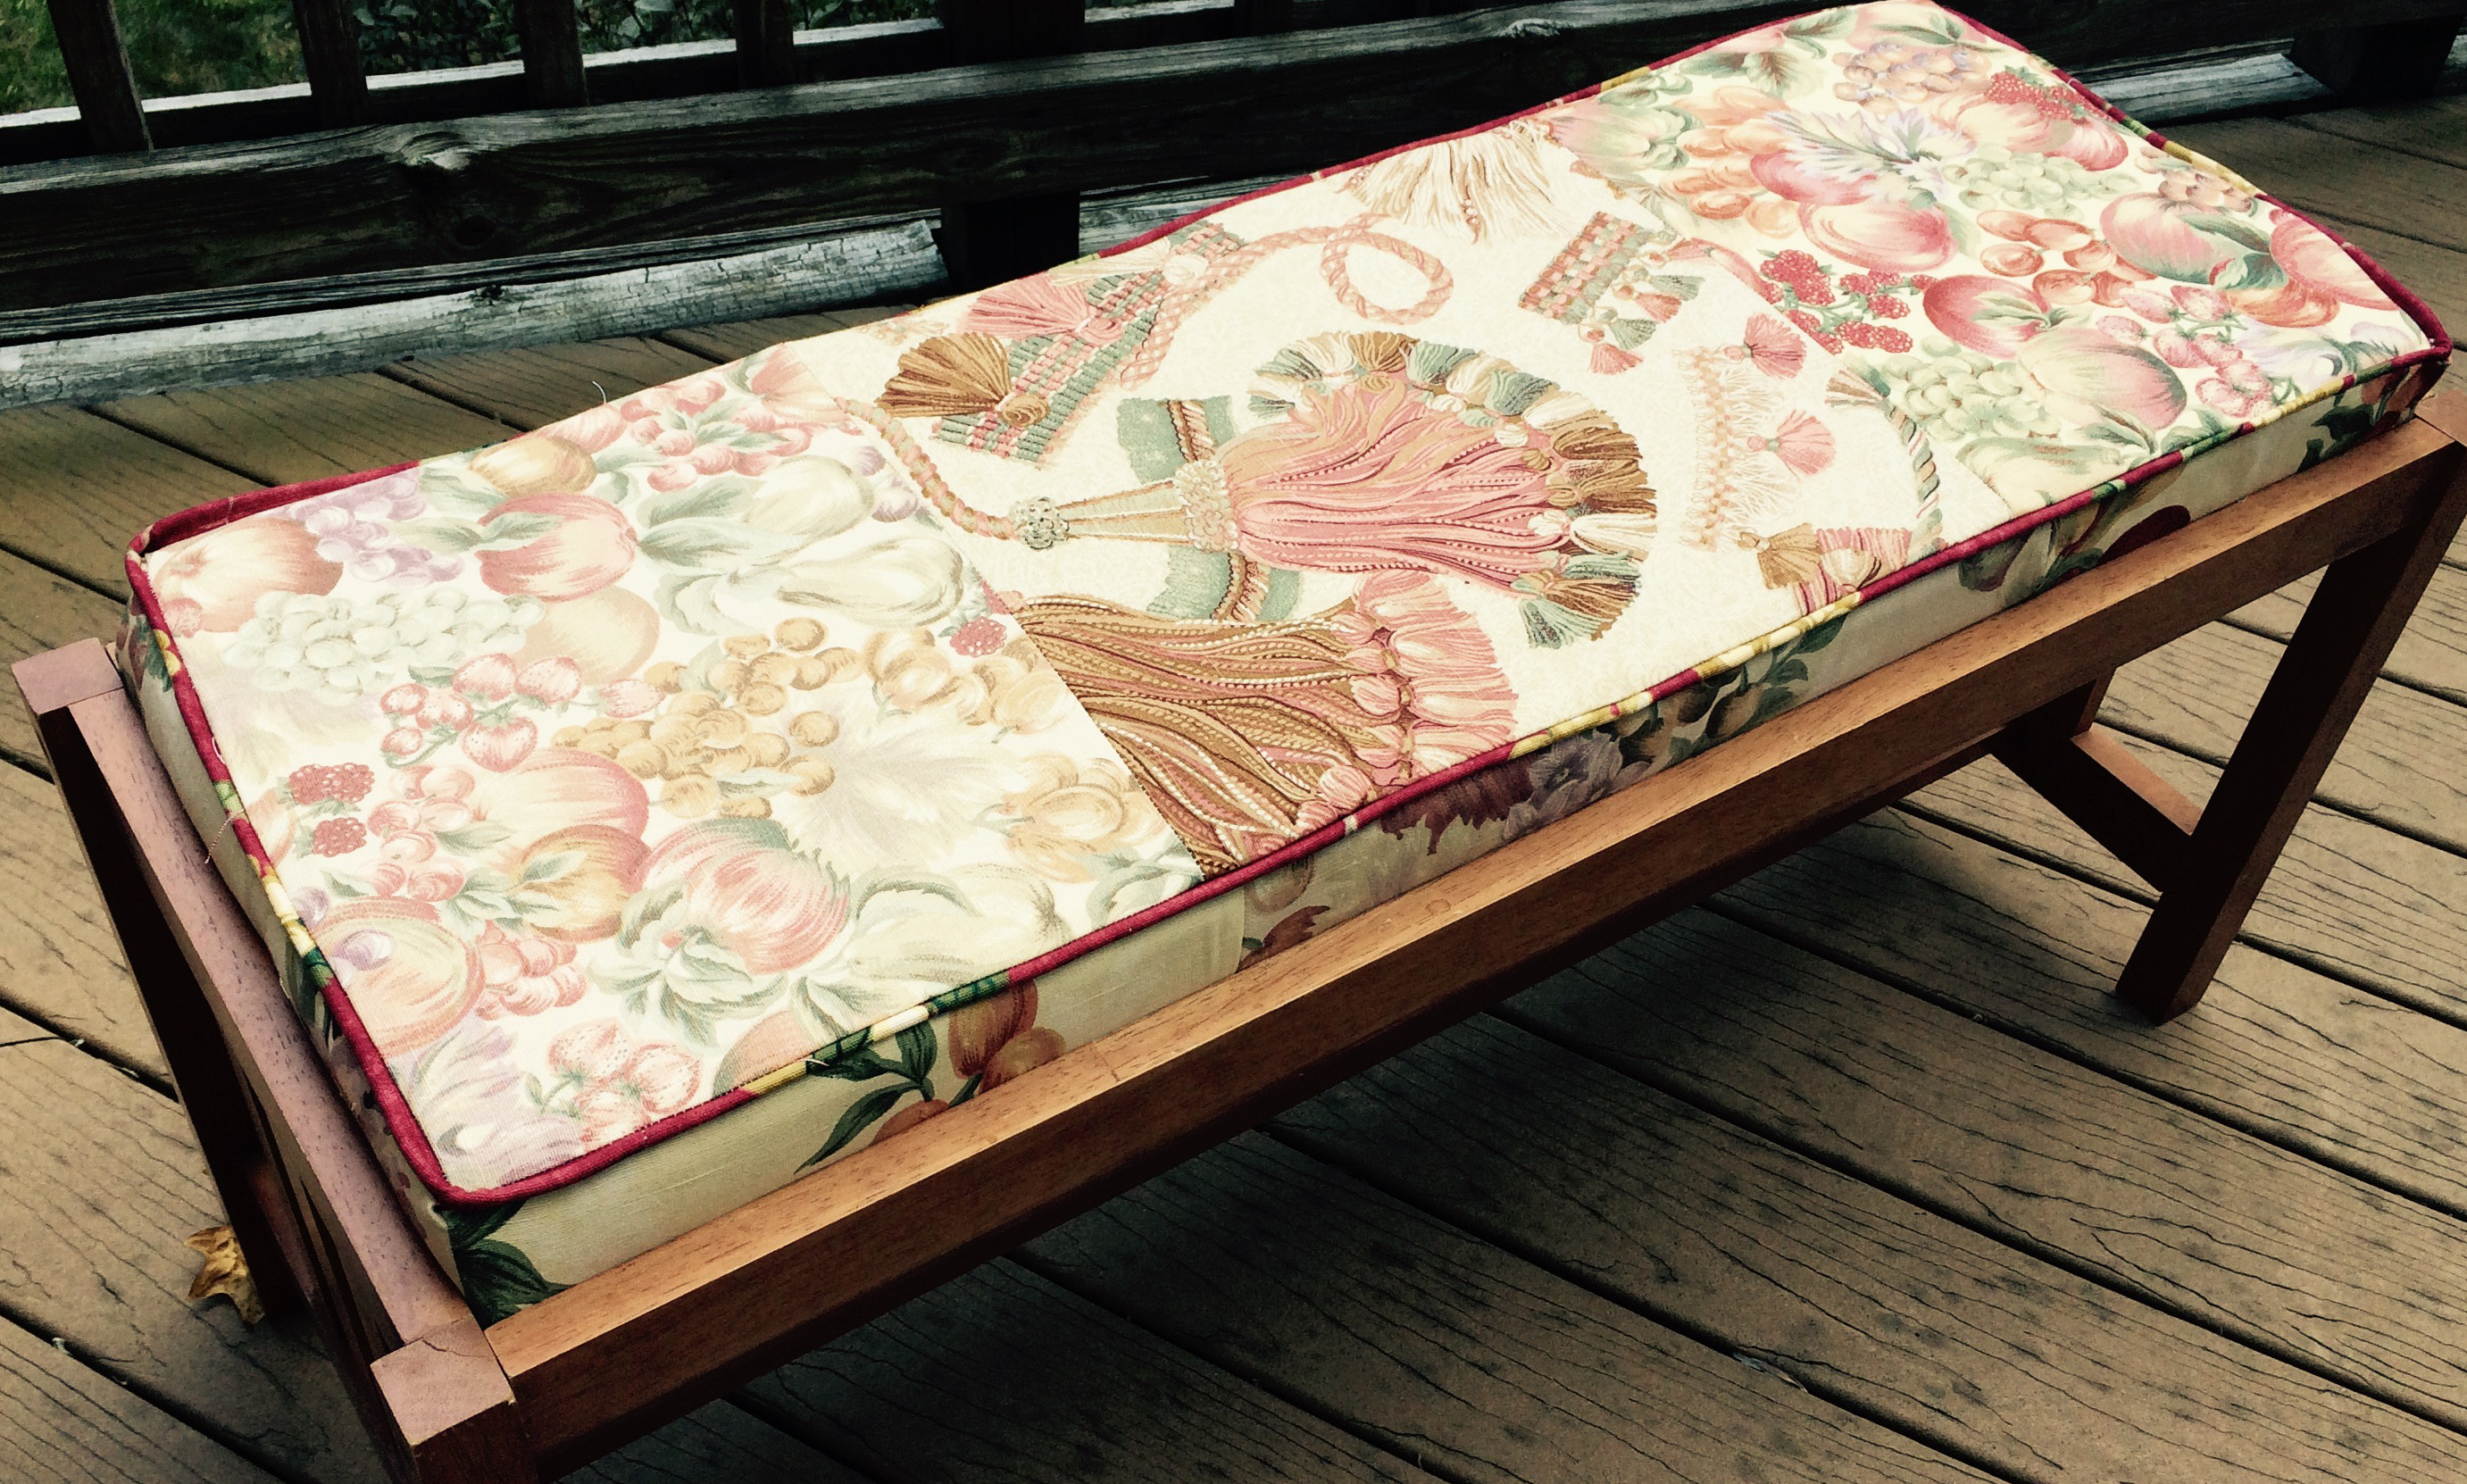 New upholstered bench cover made from interior design samples